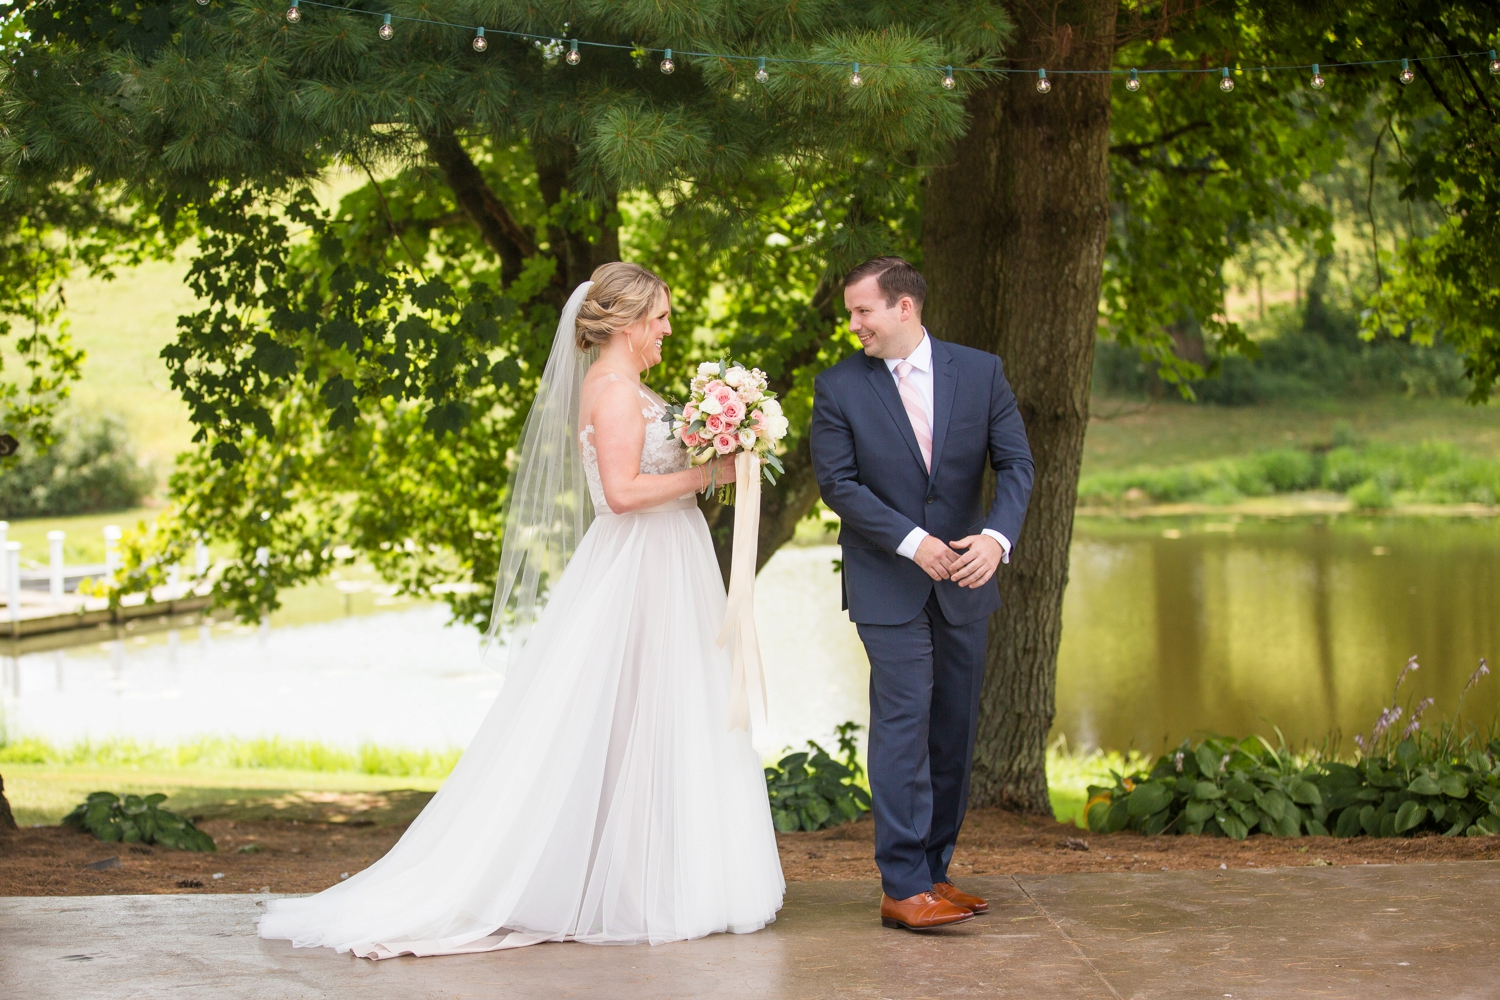 shady elms farm wedding photos, pittsburgh farm wedding venues, pittsburgh wedding photographer, pittsburgh engagement photographer